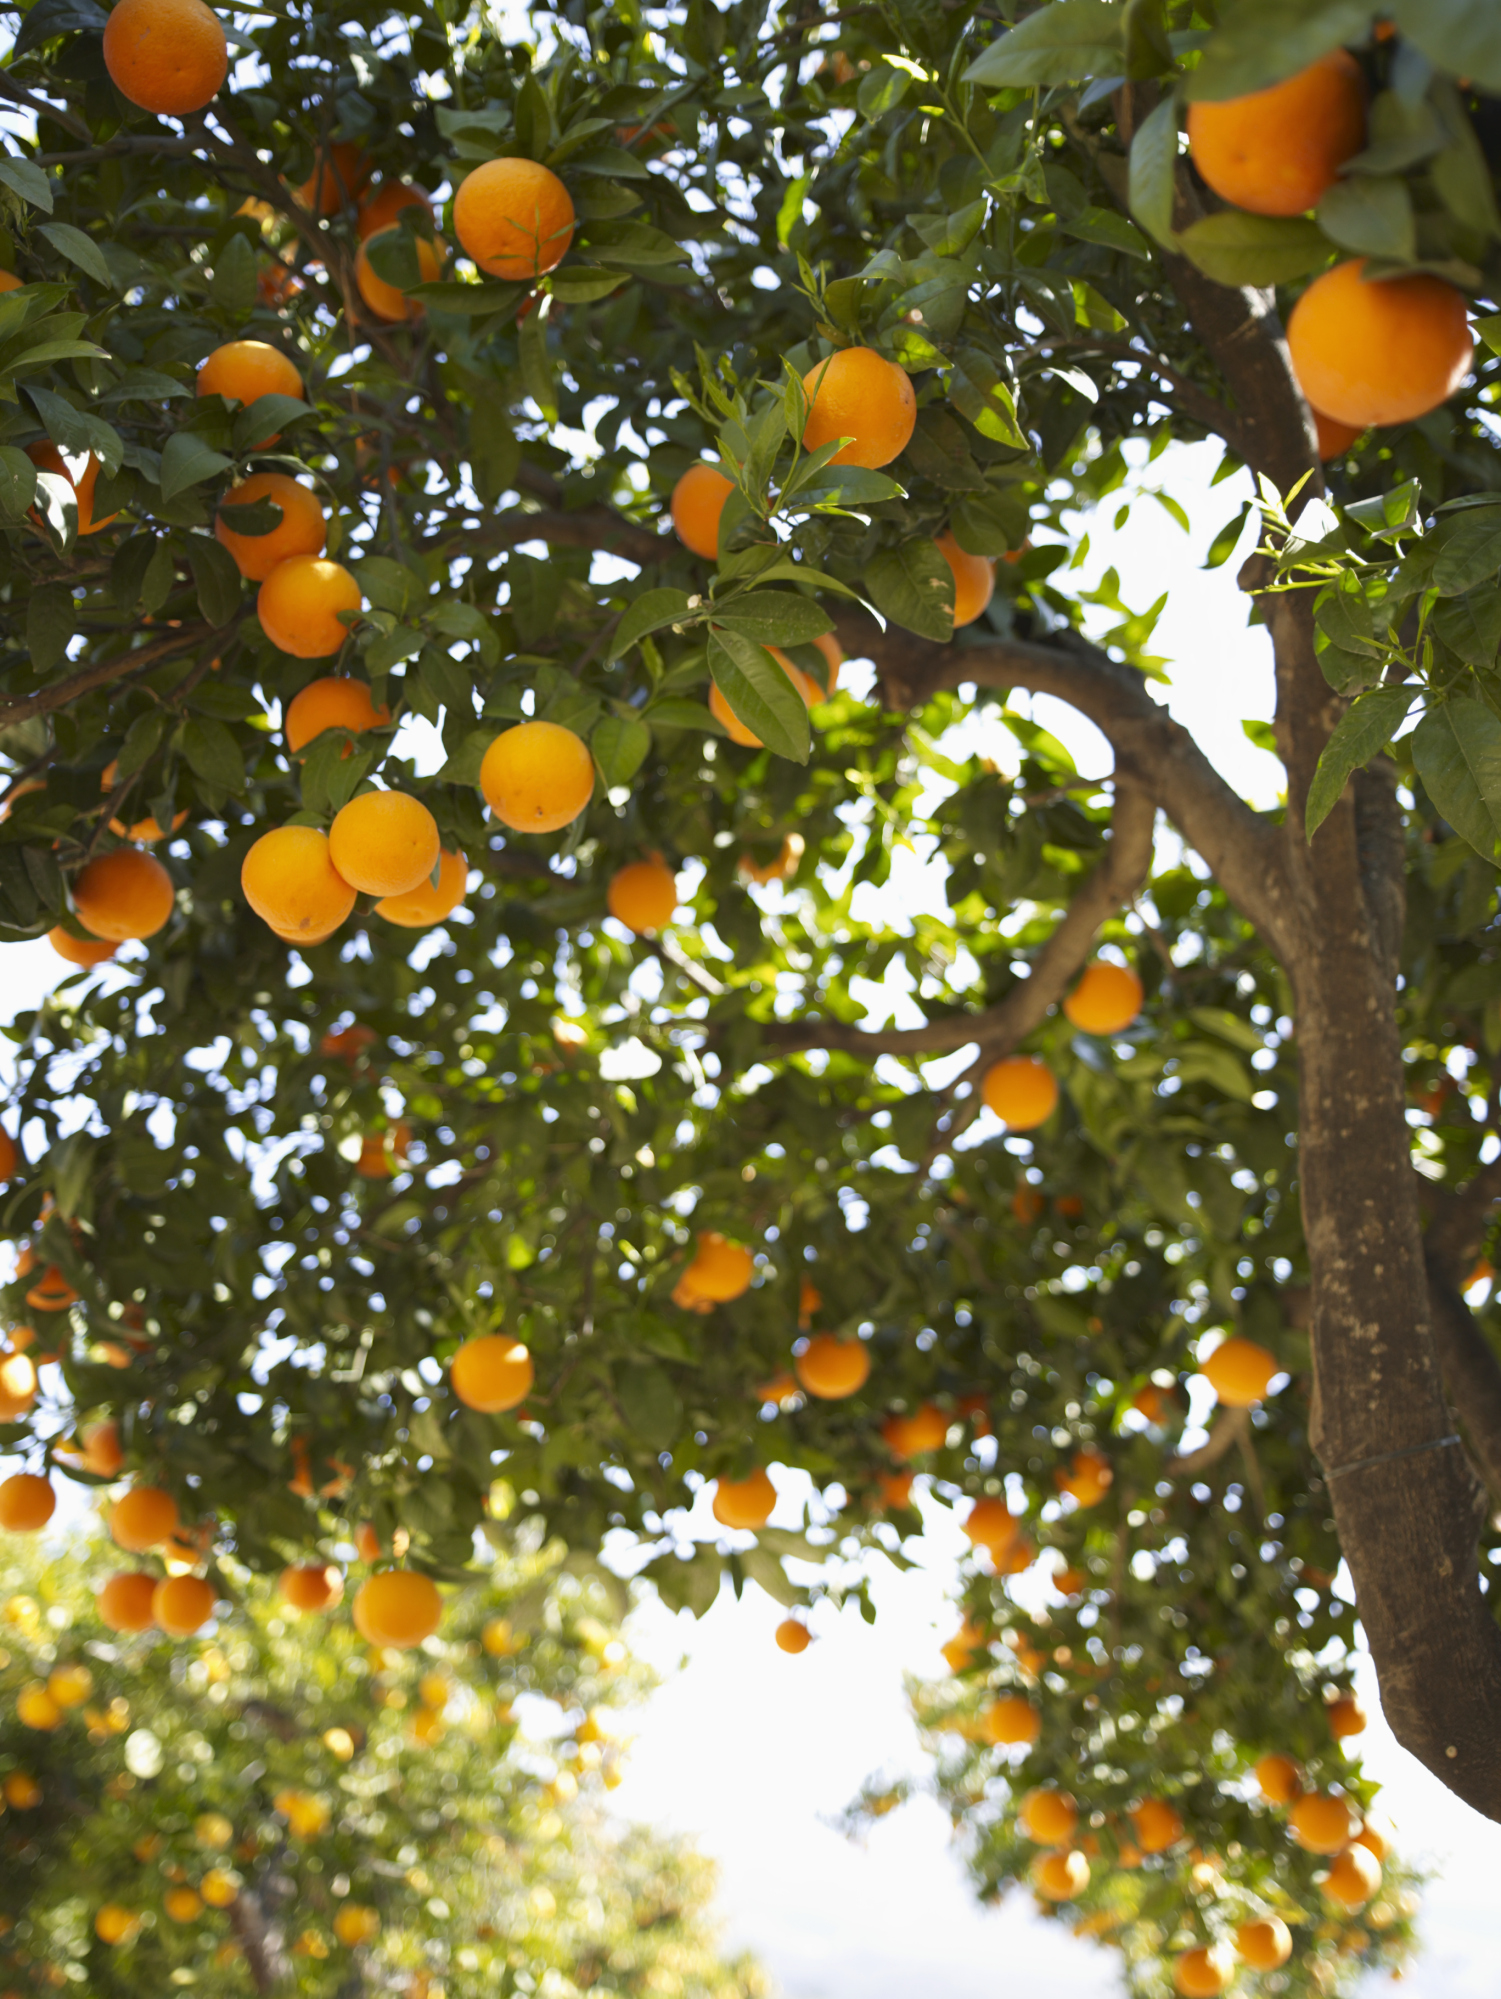 When Do Orange Trees Get Oranges? | Home Guides | SF GateHome Guides - SFGate